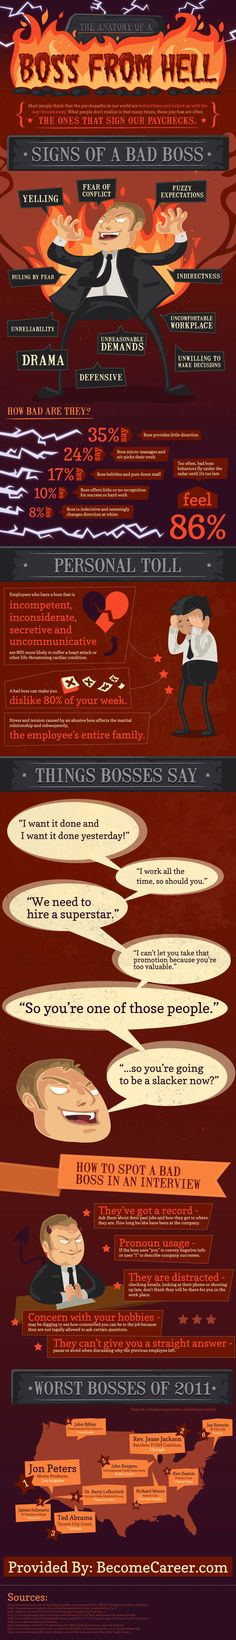 The Anatomy of a Boss from Hell | Infographic Zone only >>IT<<<< needs to be female